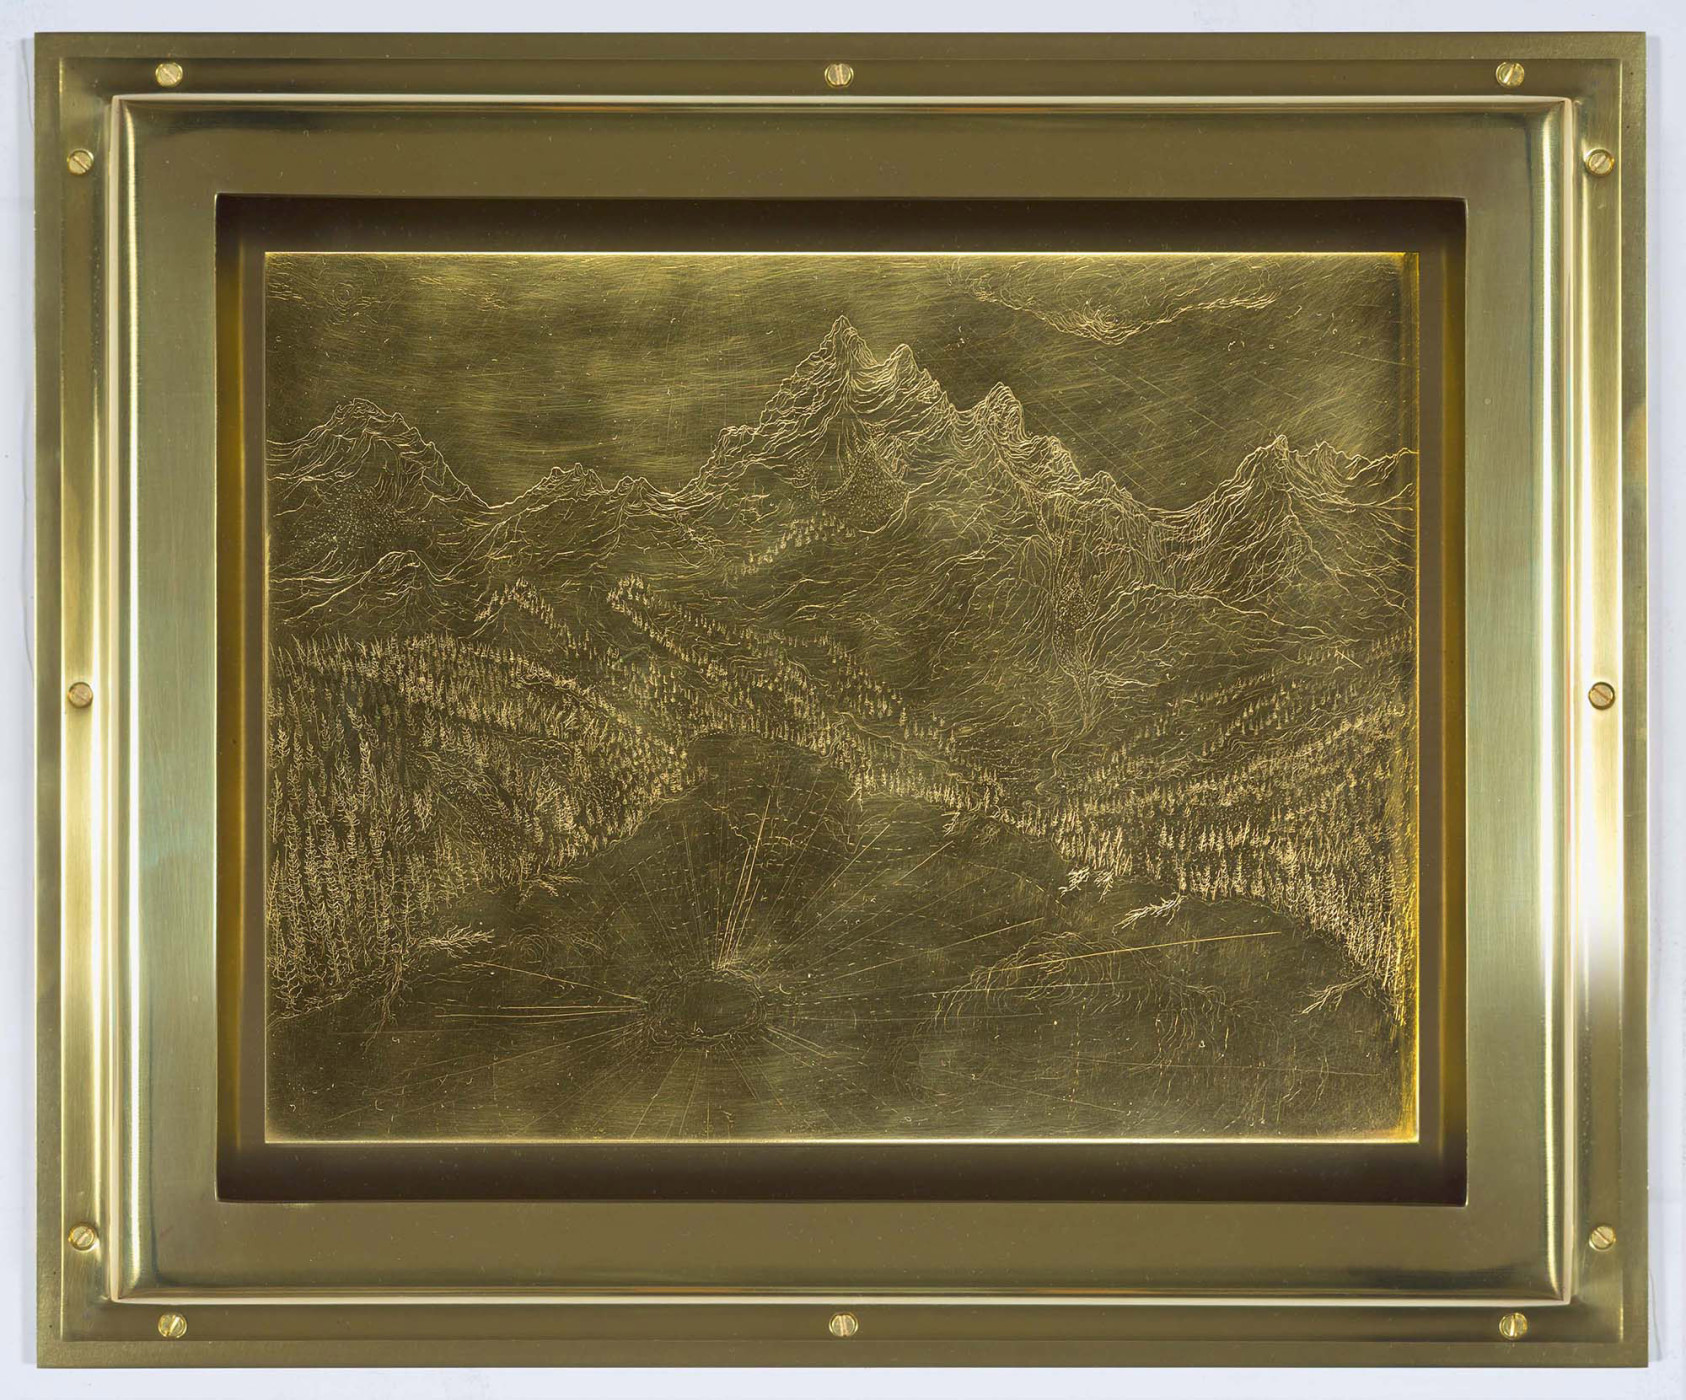 """<div class=""""title""""><em>River of Fundament: Sawtooth National Monument</em>, 2014</div><div class=""""signed_and_dated"""">signed on verso</div><div class=""""medium"""">engraved brass in brass frame</div><div class=""""dimensions"""">31.1 x 37.5 x 3.8 cm<br />12 3/16 x 14 3/4 x 1 7/16 in.</div>"""